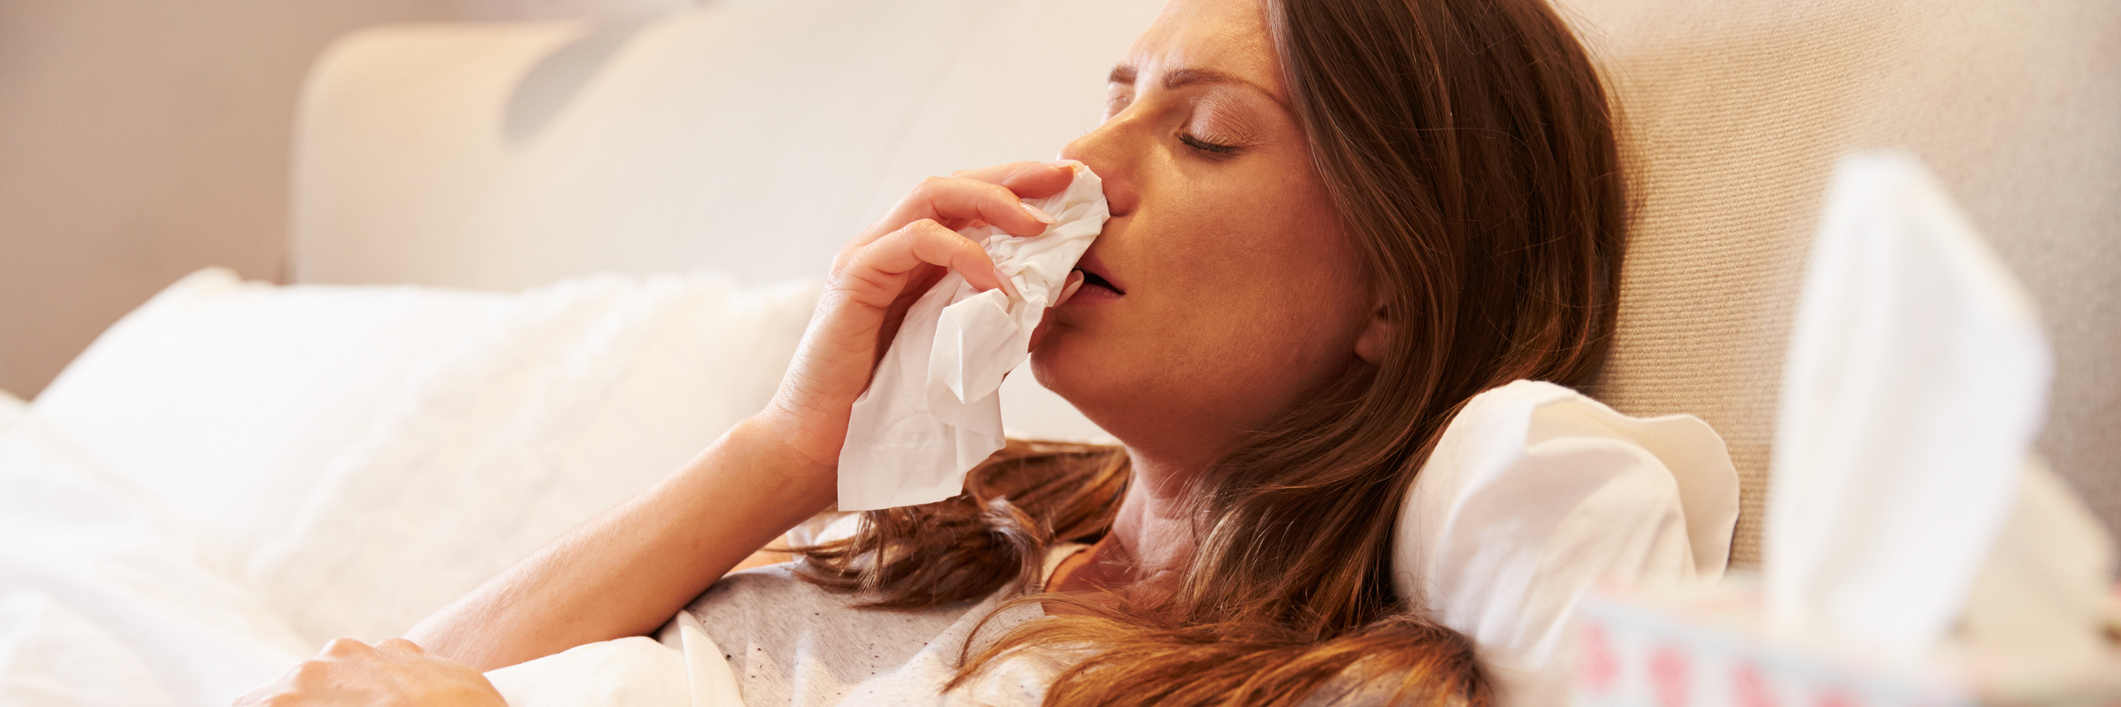 woman in bed blowing her nose